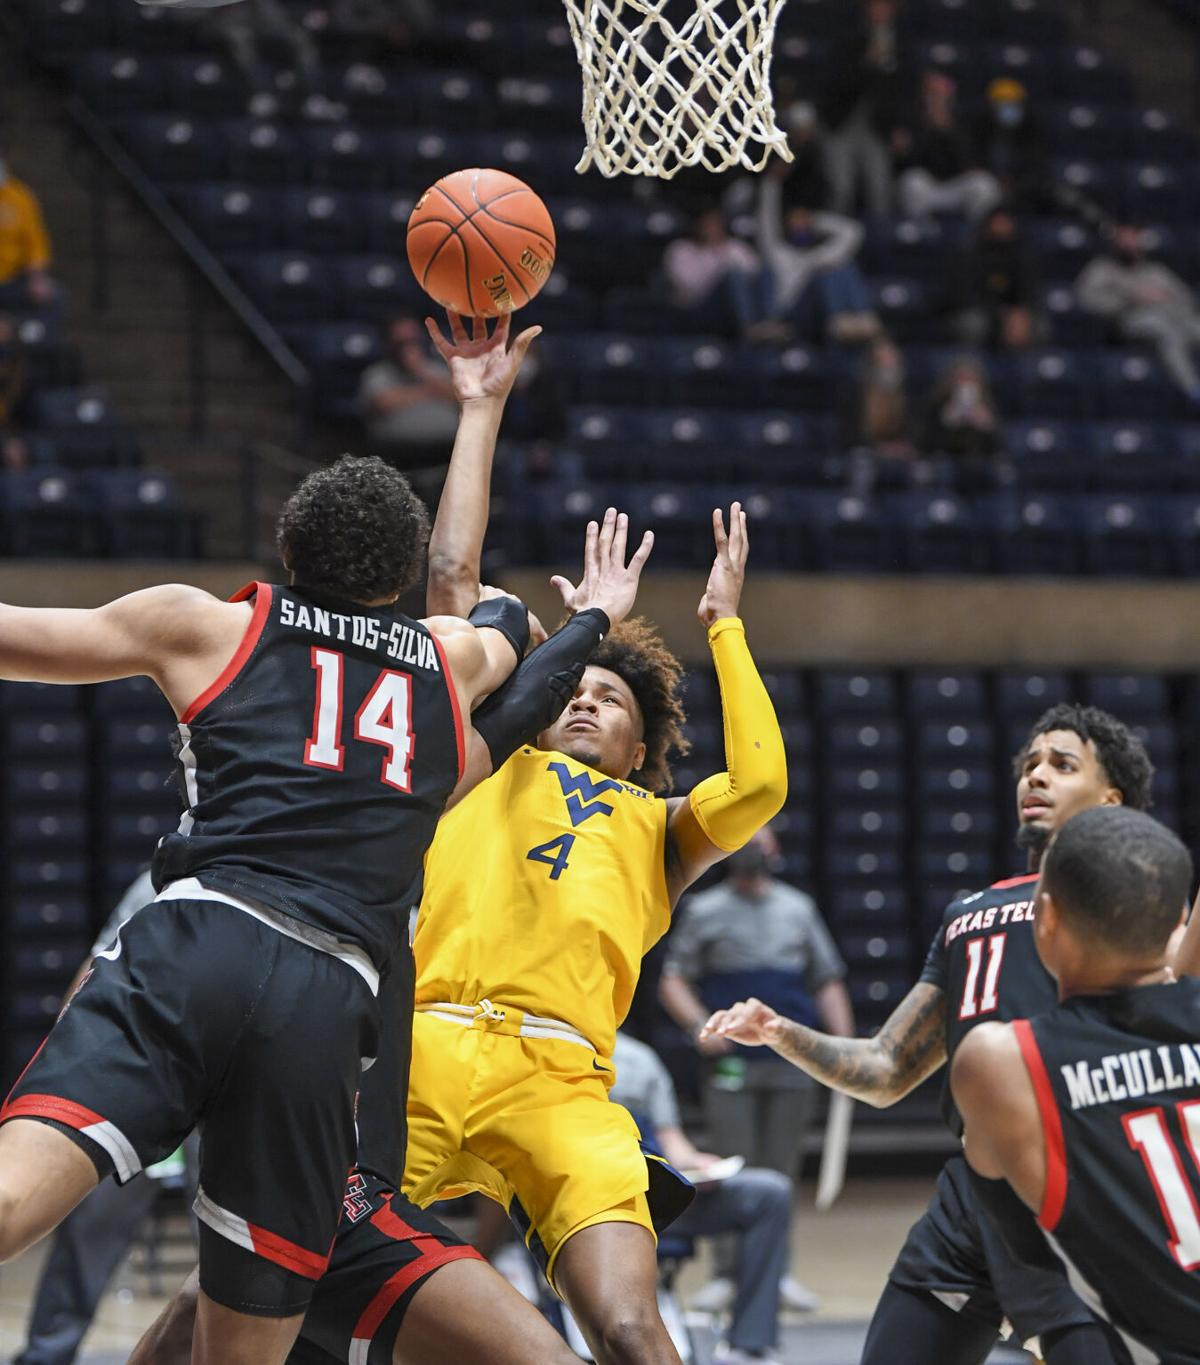 West Virginia guard Miles McBride (4) hits the game-winning basket in the final seconds against Texas Tech at the WVU Coliseum in Morgantown, W.Va., on Jan. 25, 2021.